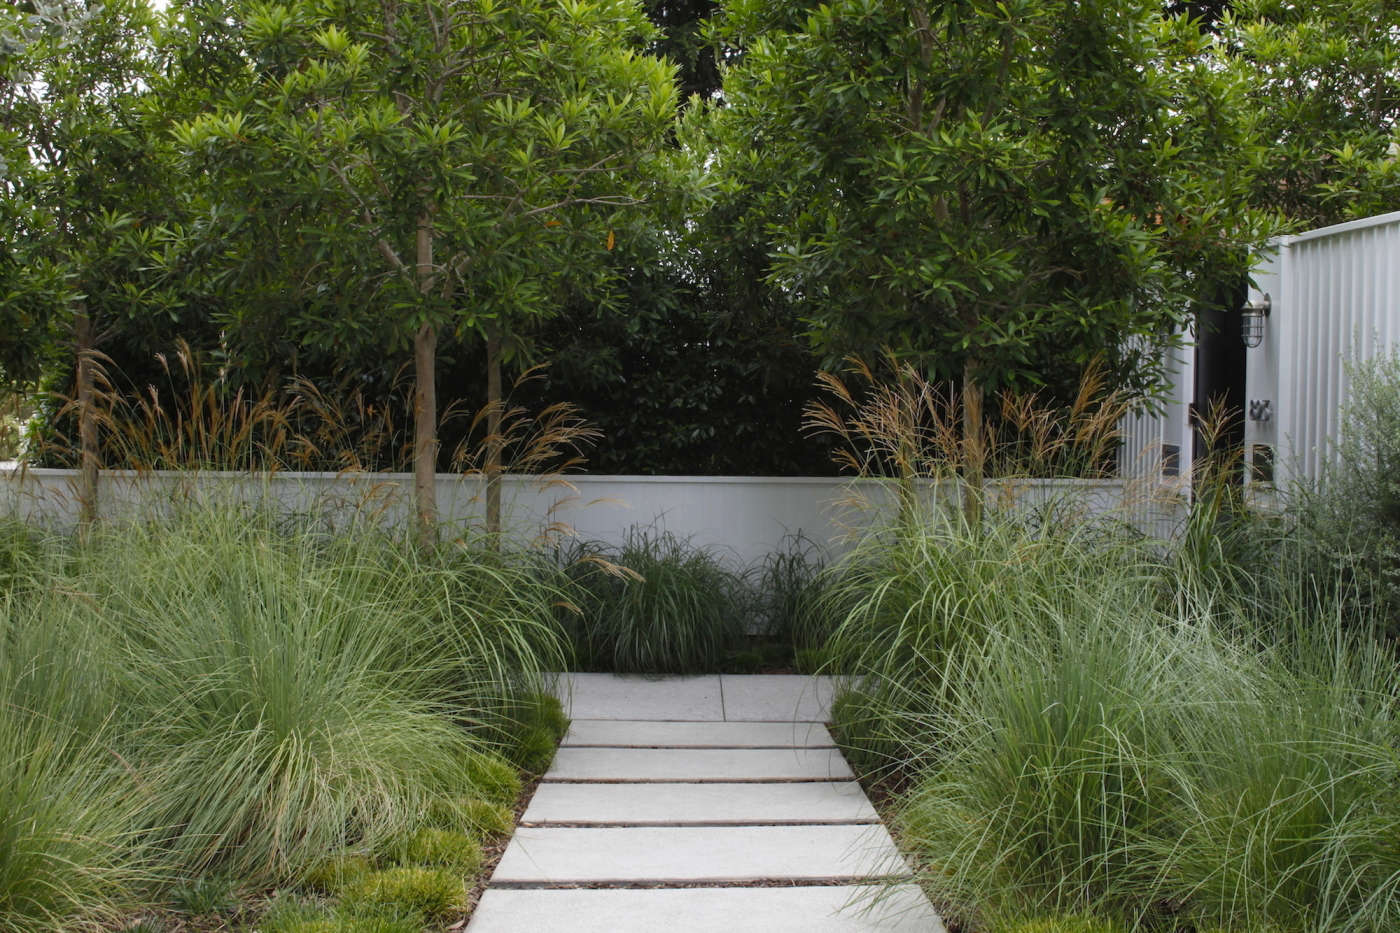 Landscape Architect Visit A Refined Family Garden With